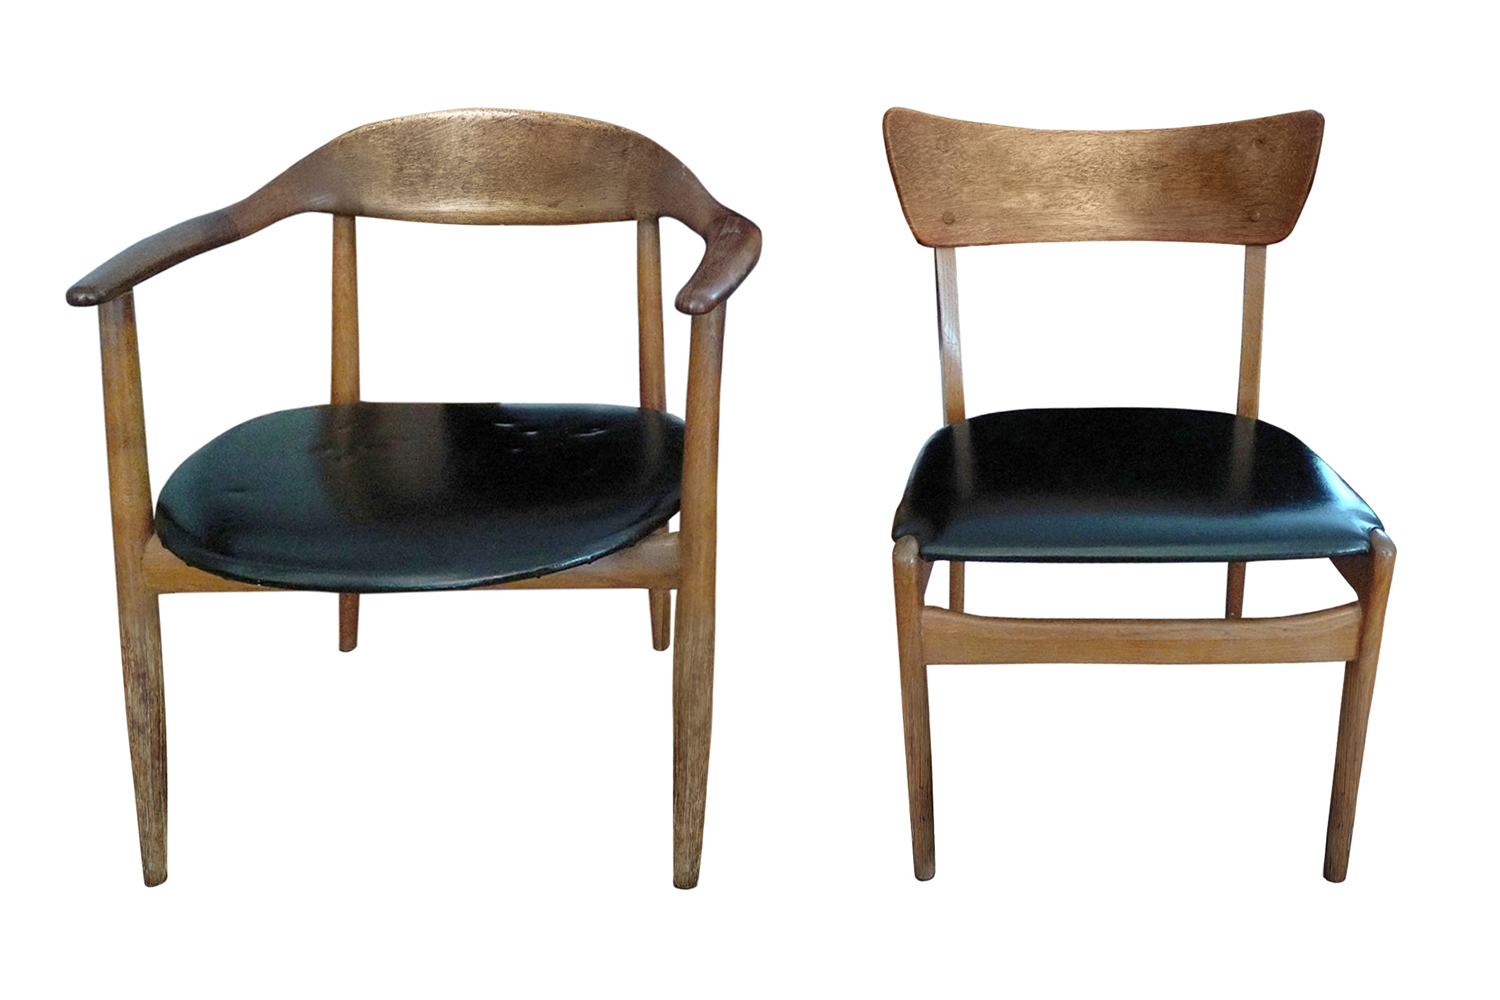 Restoring mid century modern dining chairs